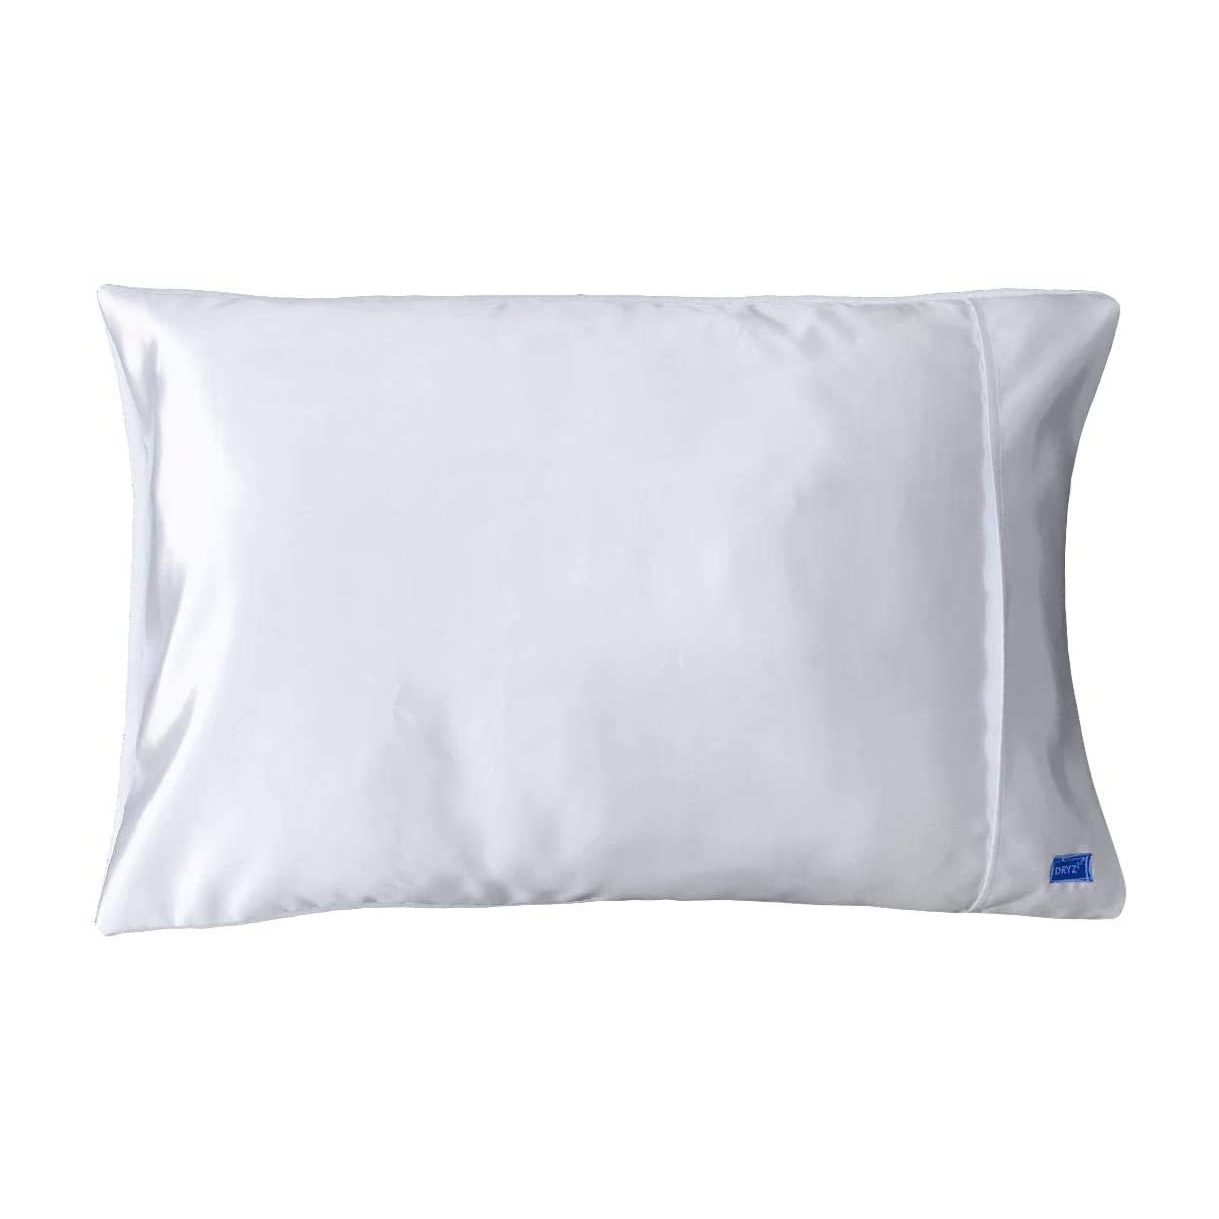 The Pillowcase for Wetheads from Dryzzz